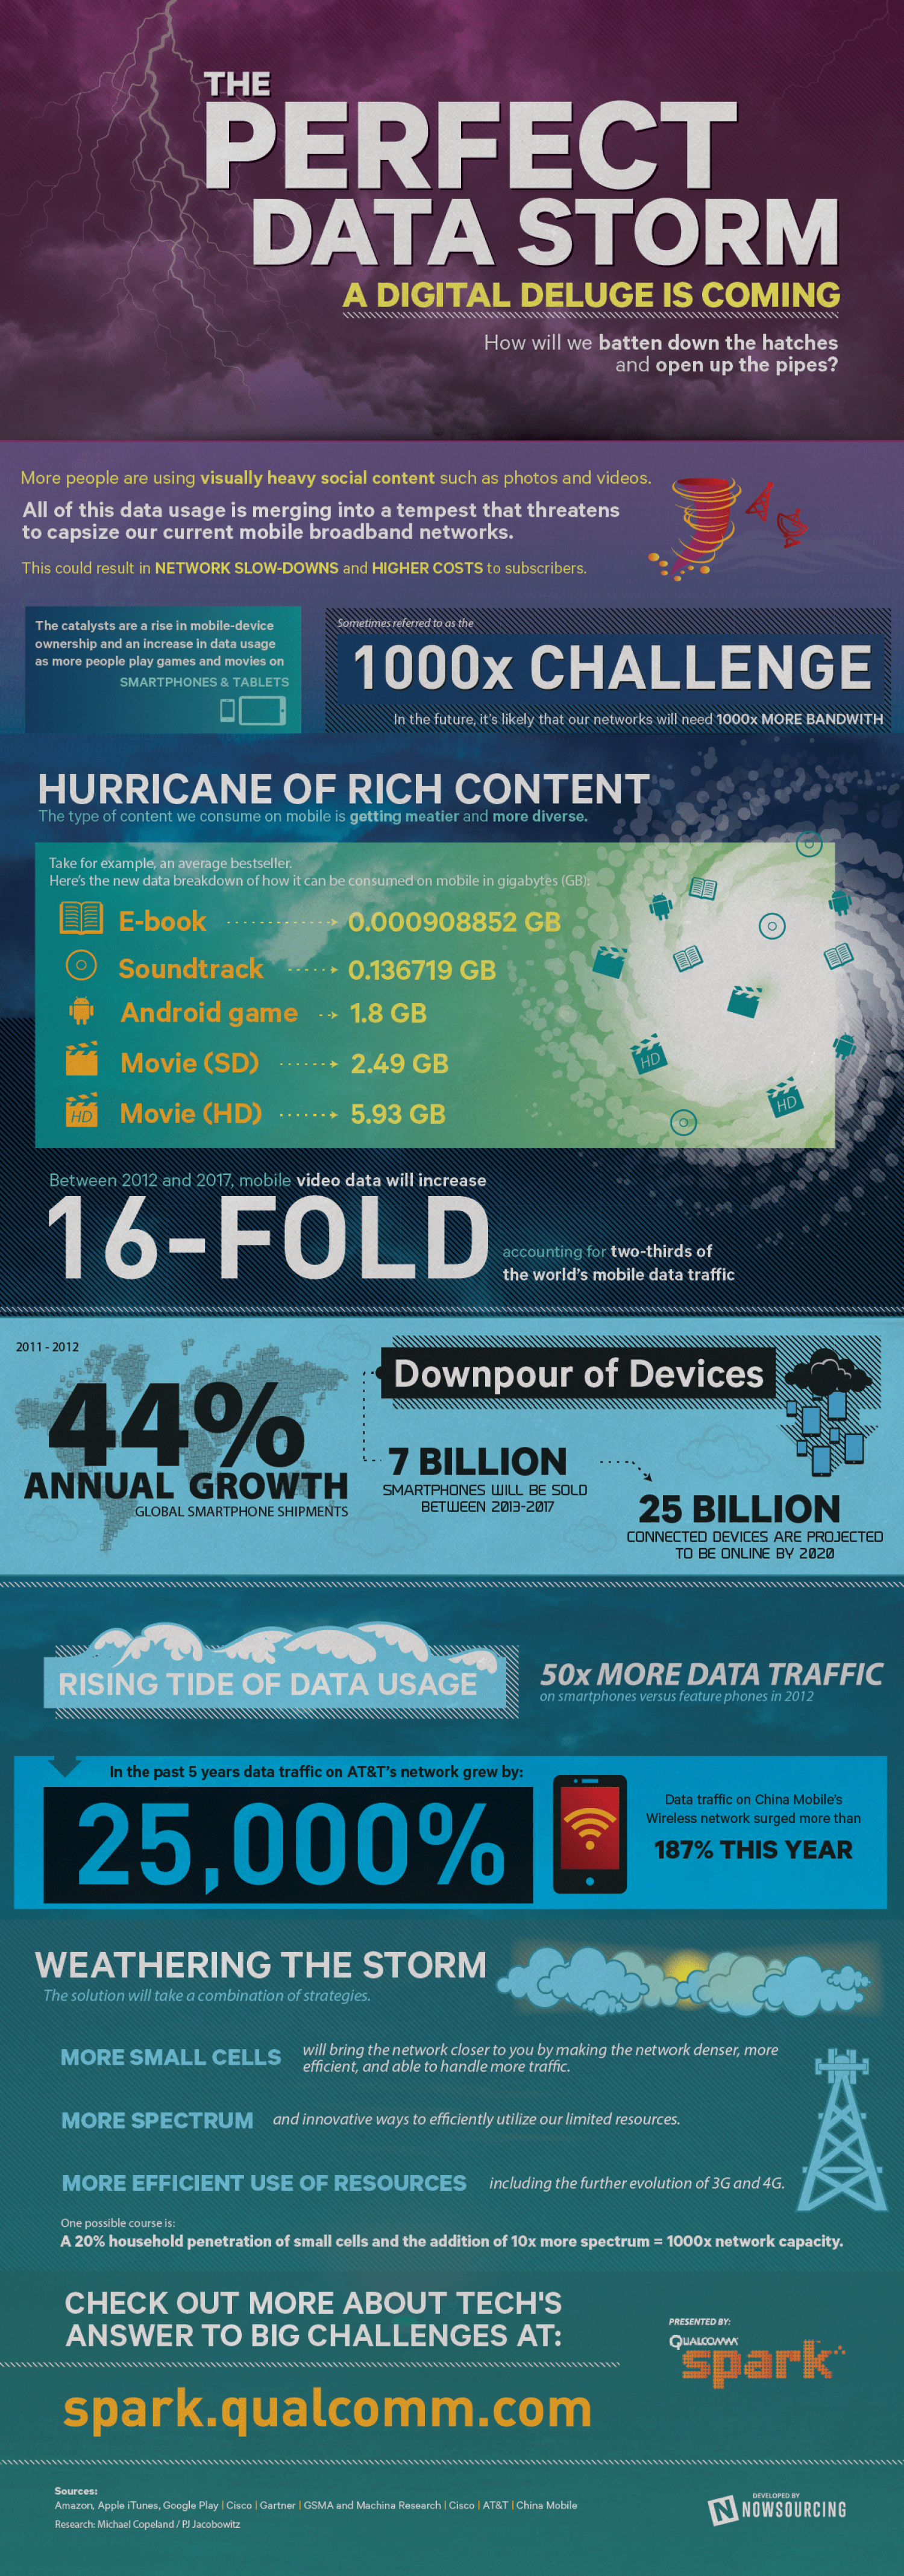 The Perfect Data Storm Infographic